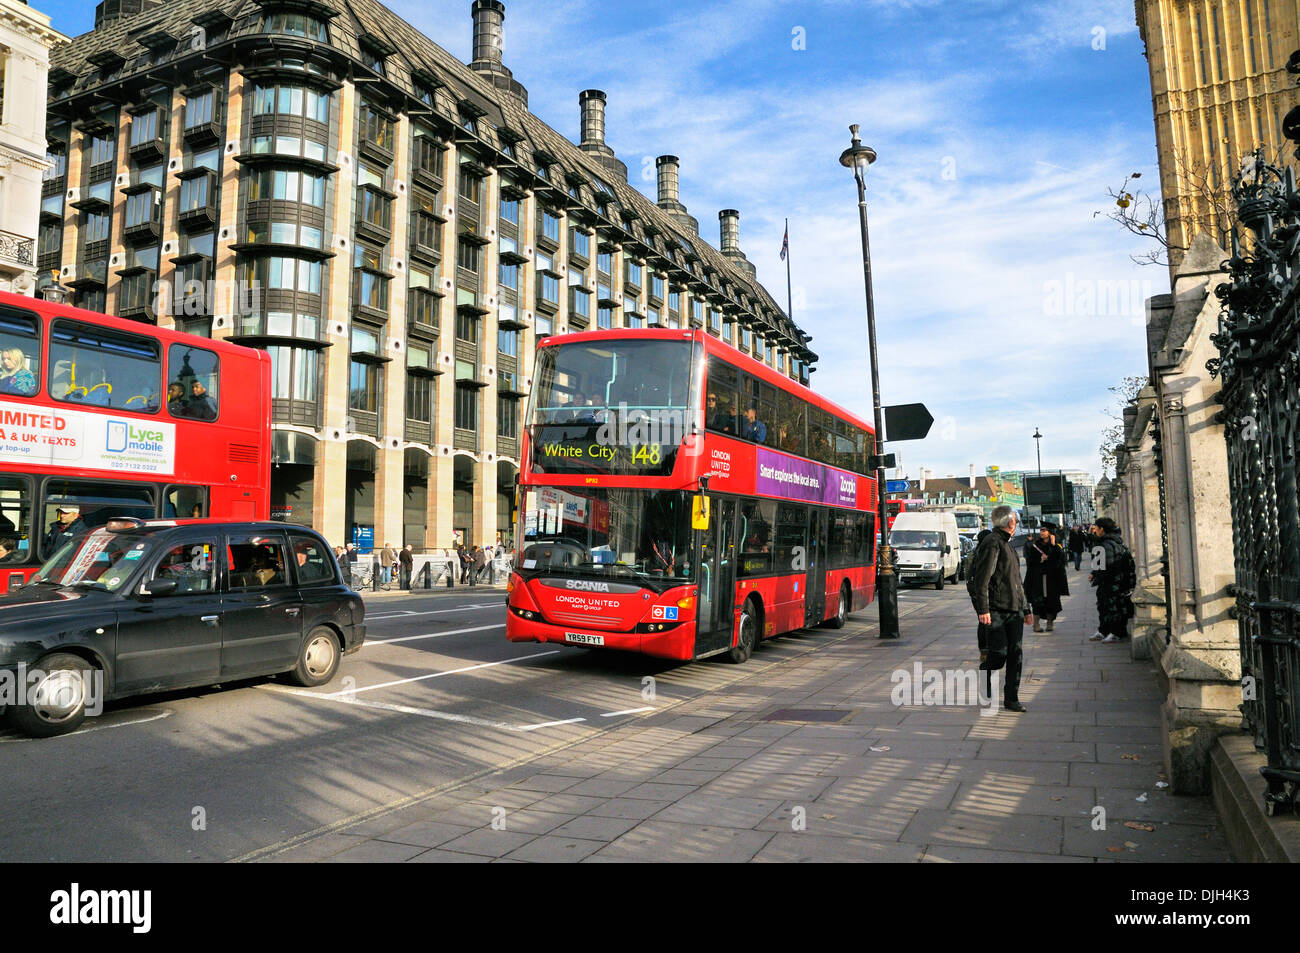 London bus passing Portcullis House and Westminster Underground Station, City of Westminster, London, England, UK - Stock Image